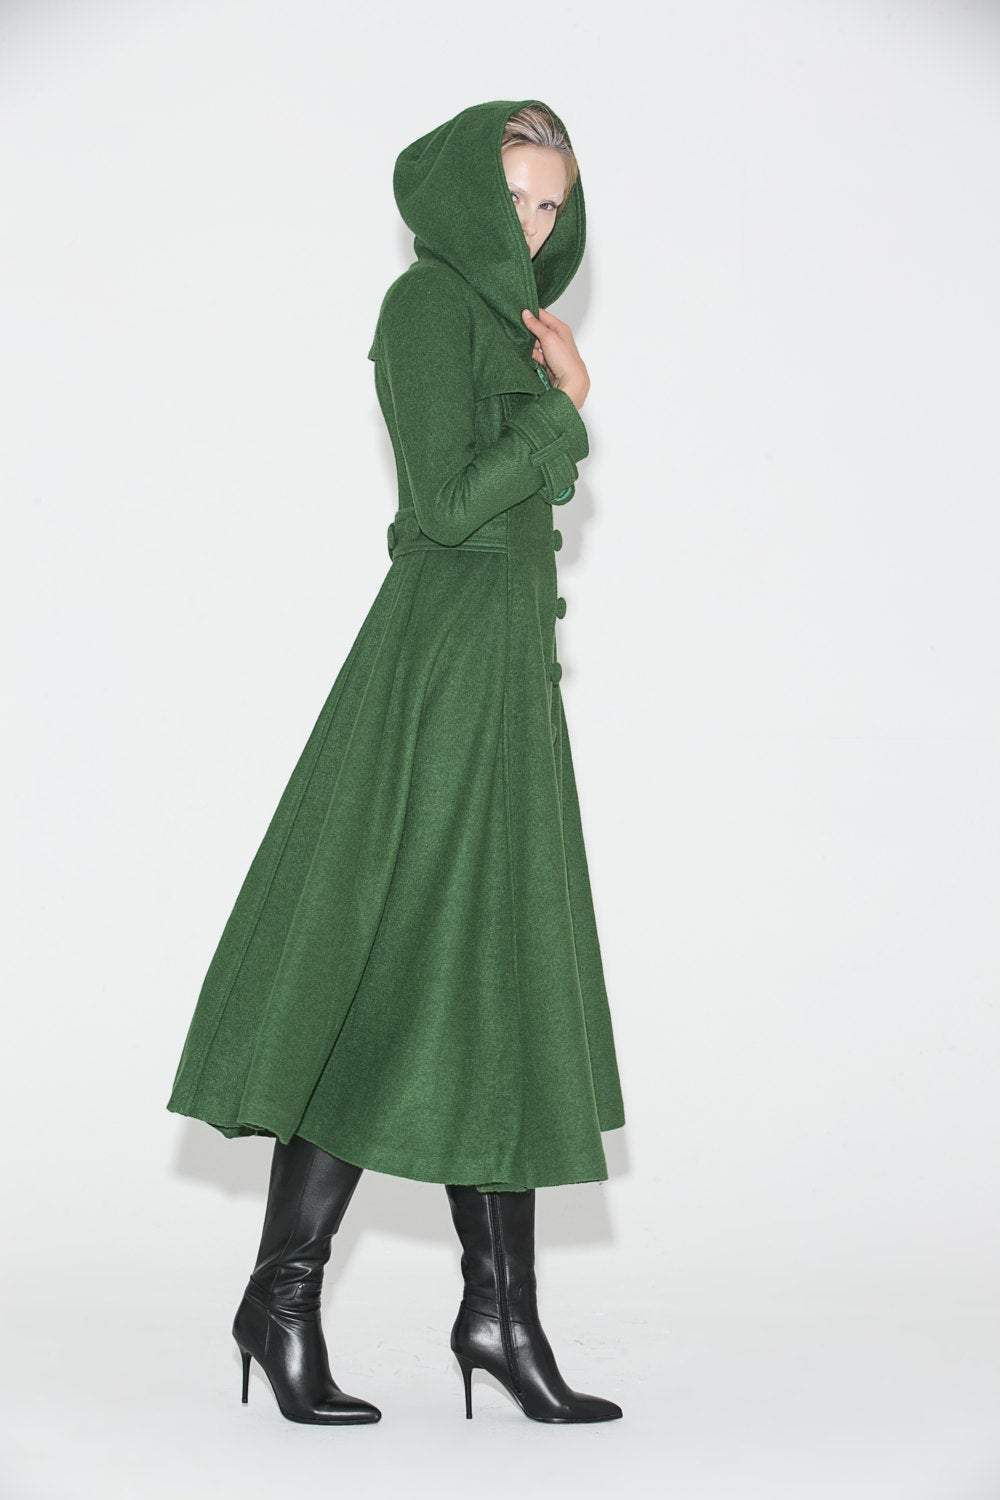 Green Coat, womens coat, wool coat, long coat, Long Fitted Hooded Single-Breasted Fully Lined Womens  Autumn Winter Outerwear  C683